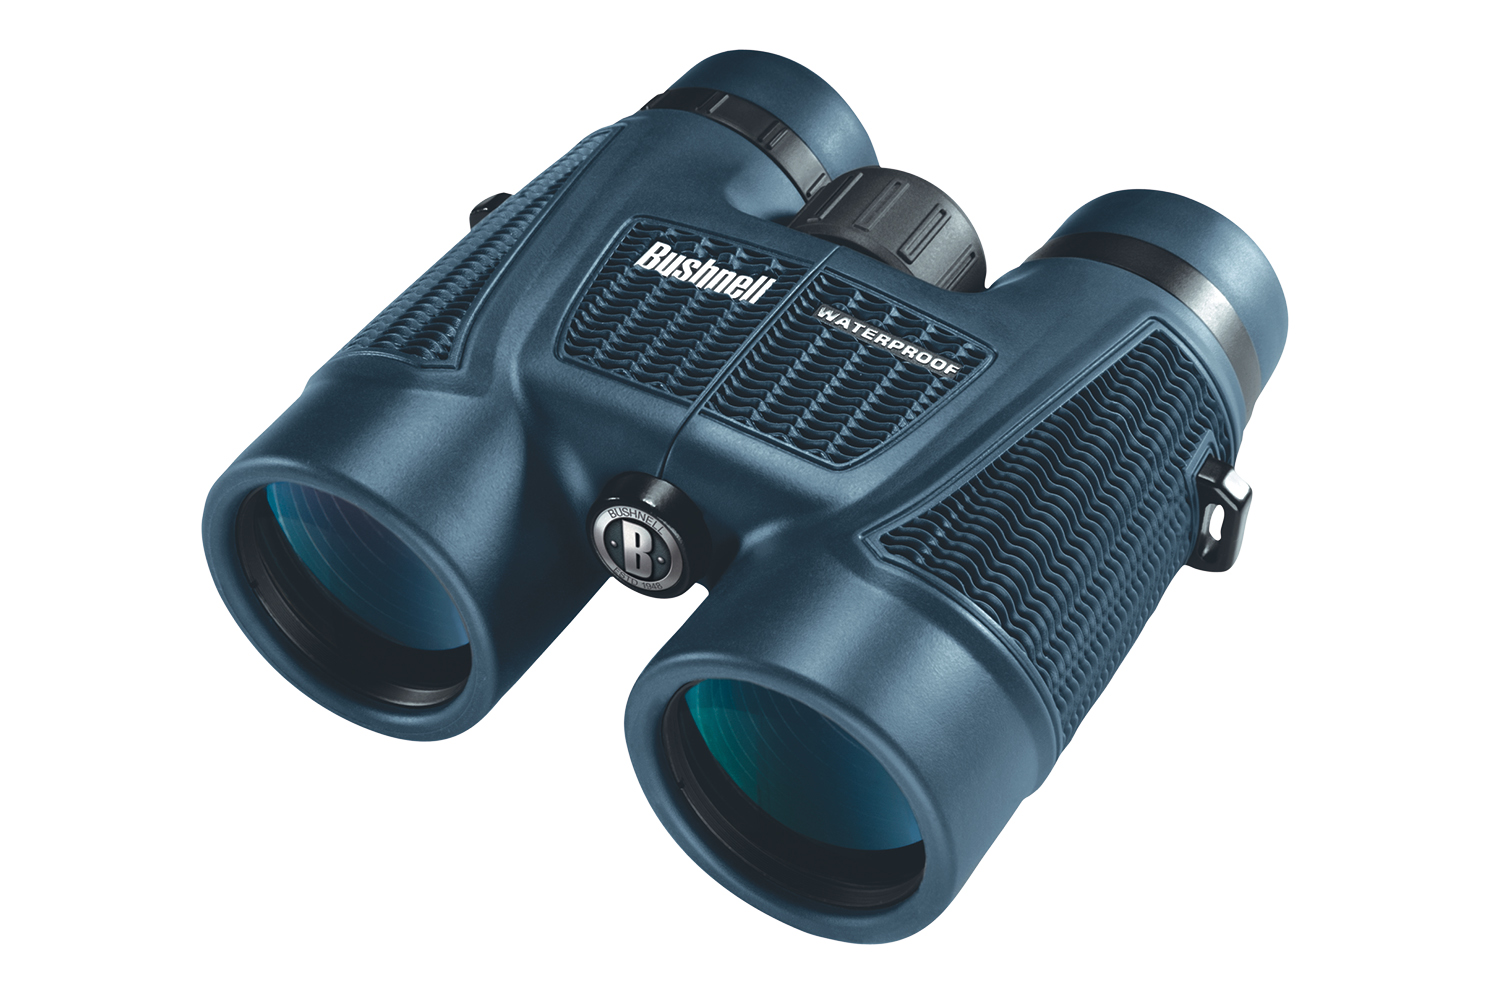 Бинокль Bushnell H2O ROOF 10x42 бинокль zeiss conquest hd 10x42